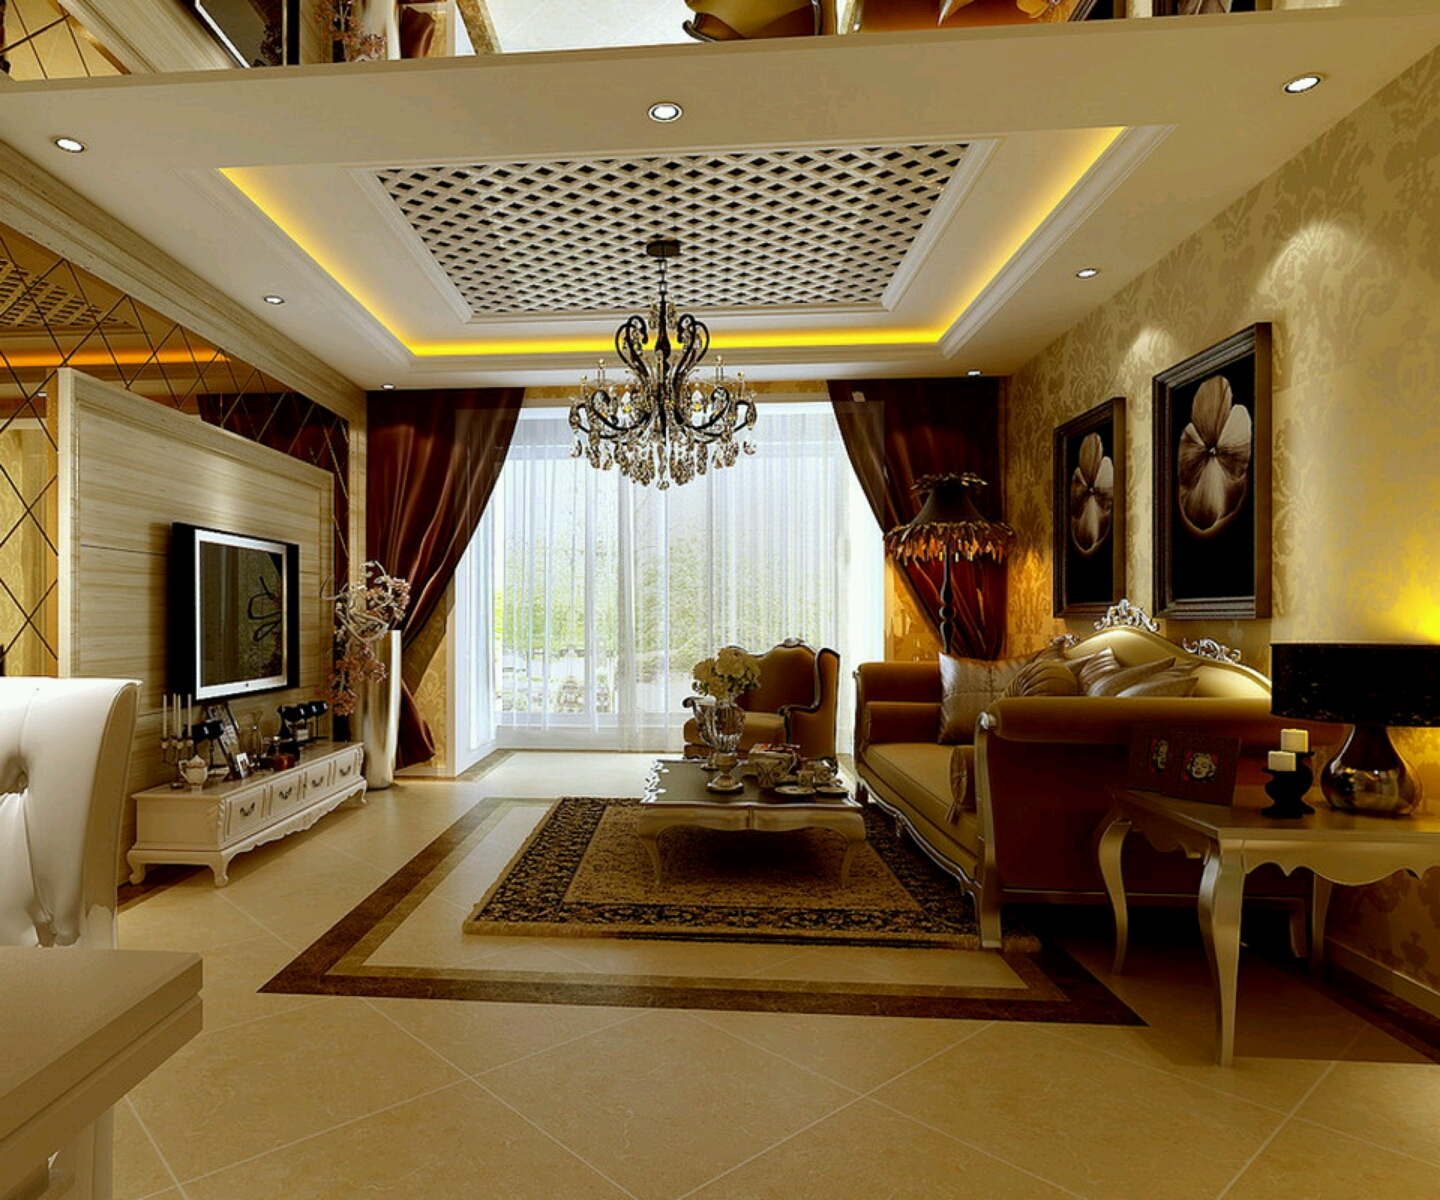 New home designs latest luxury homes interior decoration for Room interior decoration